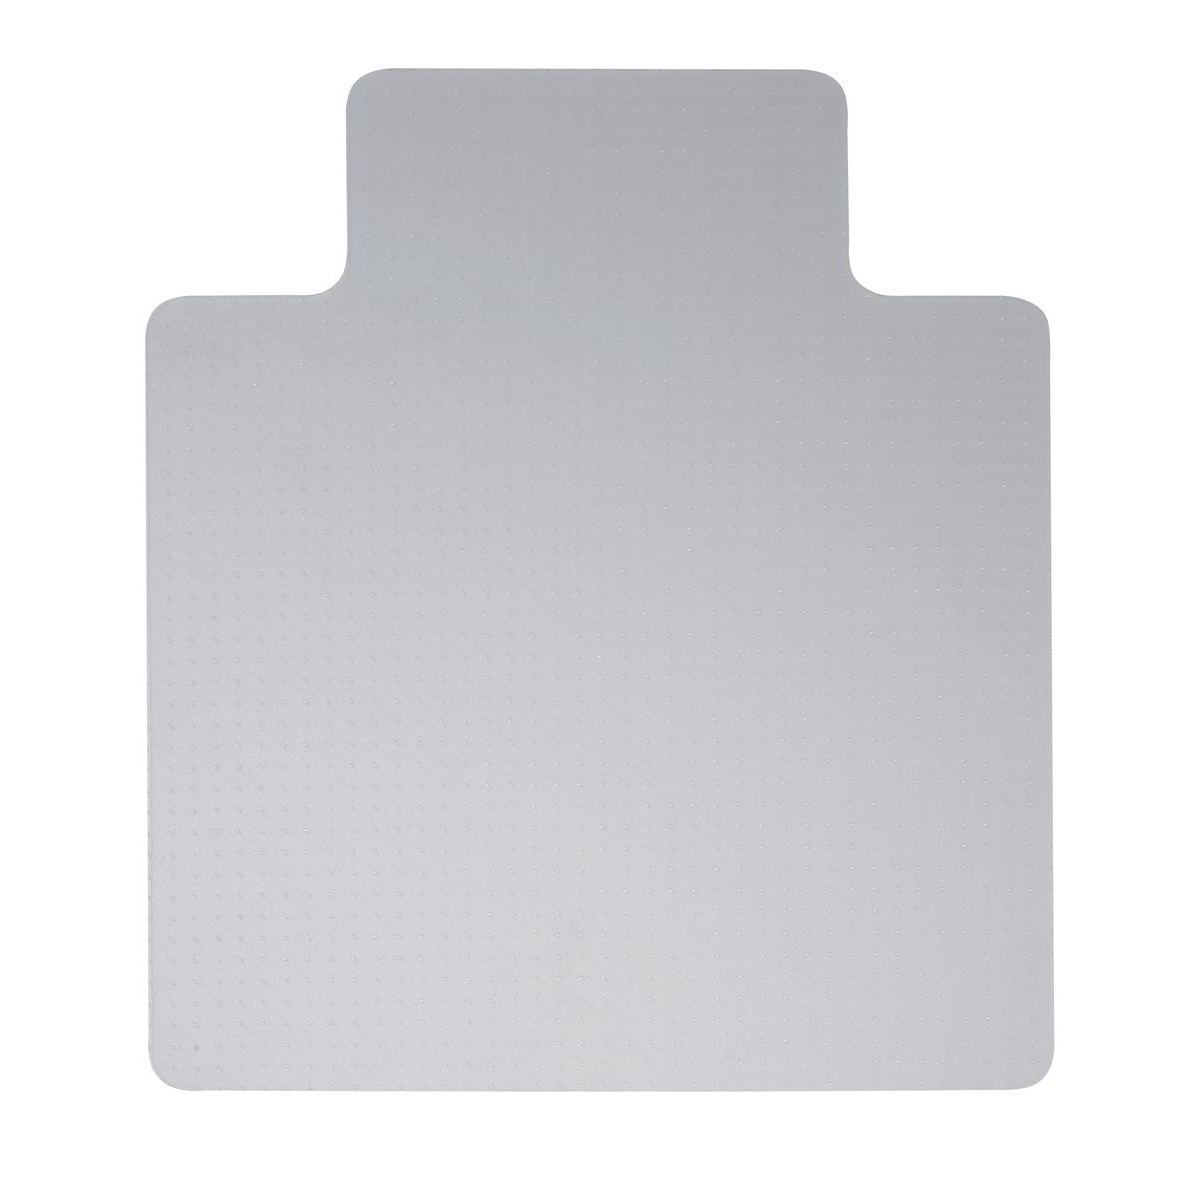 For Hard Floors 5 Star Office Chair Mat For Carpets PVC Lipped 1150x1340mm Clear/Transparent